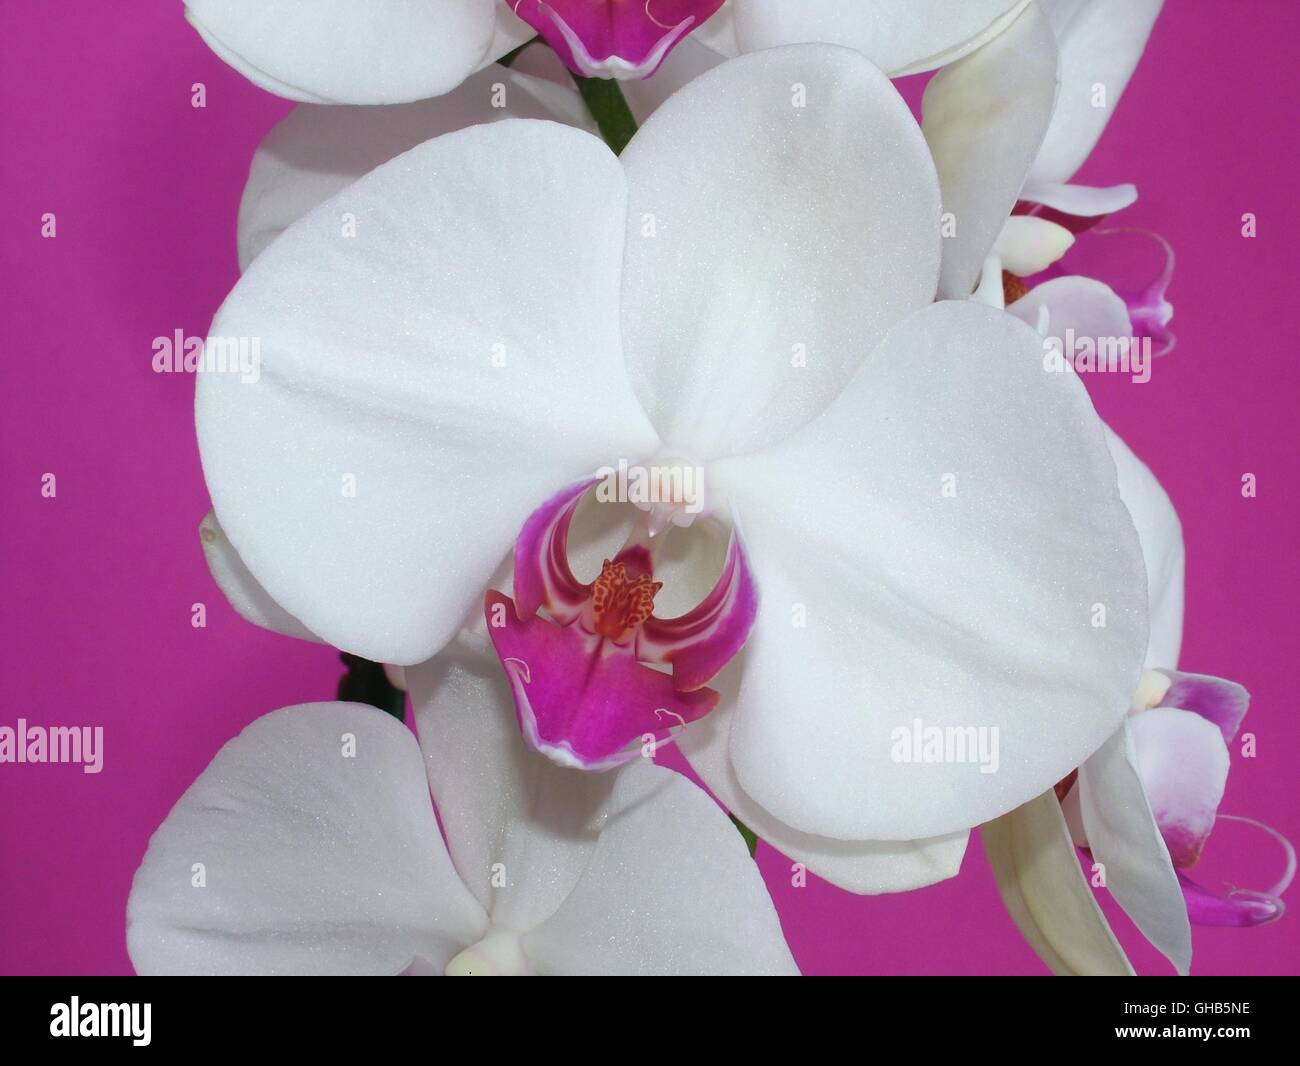 Close-up of a white Phalaenopsis orchid flower on a fuchsia background - Stock Image